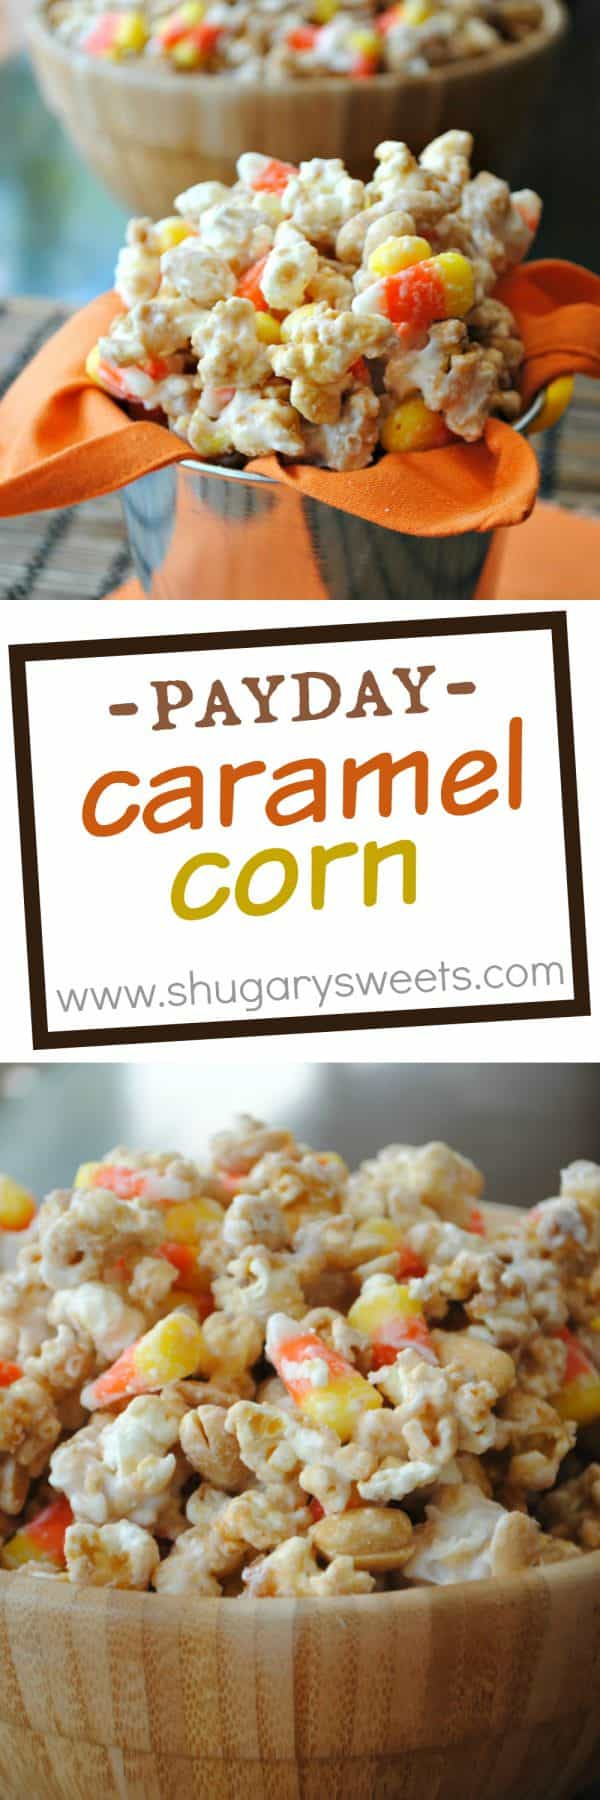 Caramel Corn that tastes like a Payday candy bar! With peanuts and candy corn!